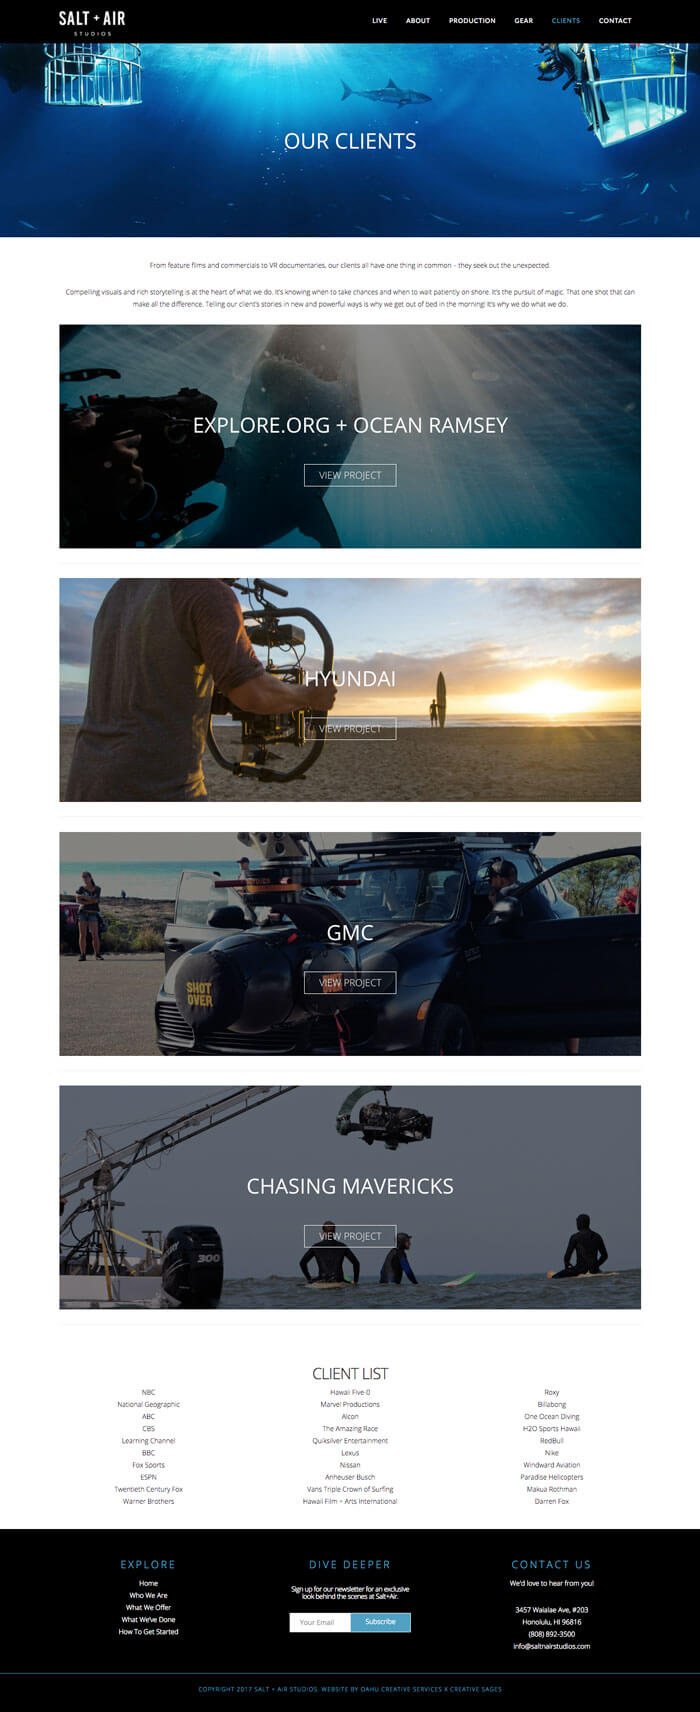 hawaii web design production company underwater photography aerial videography